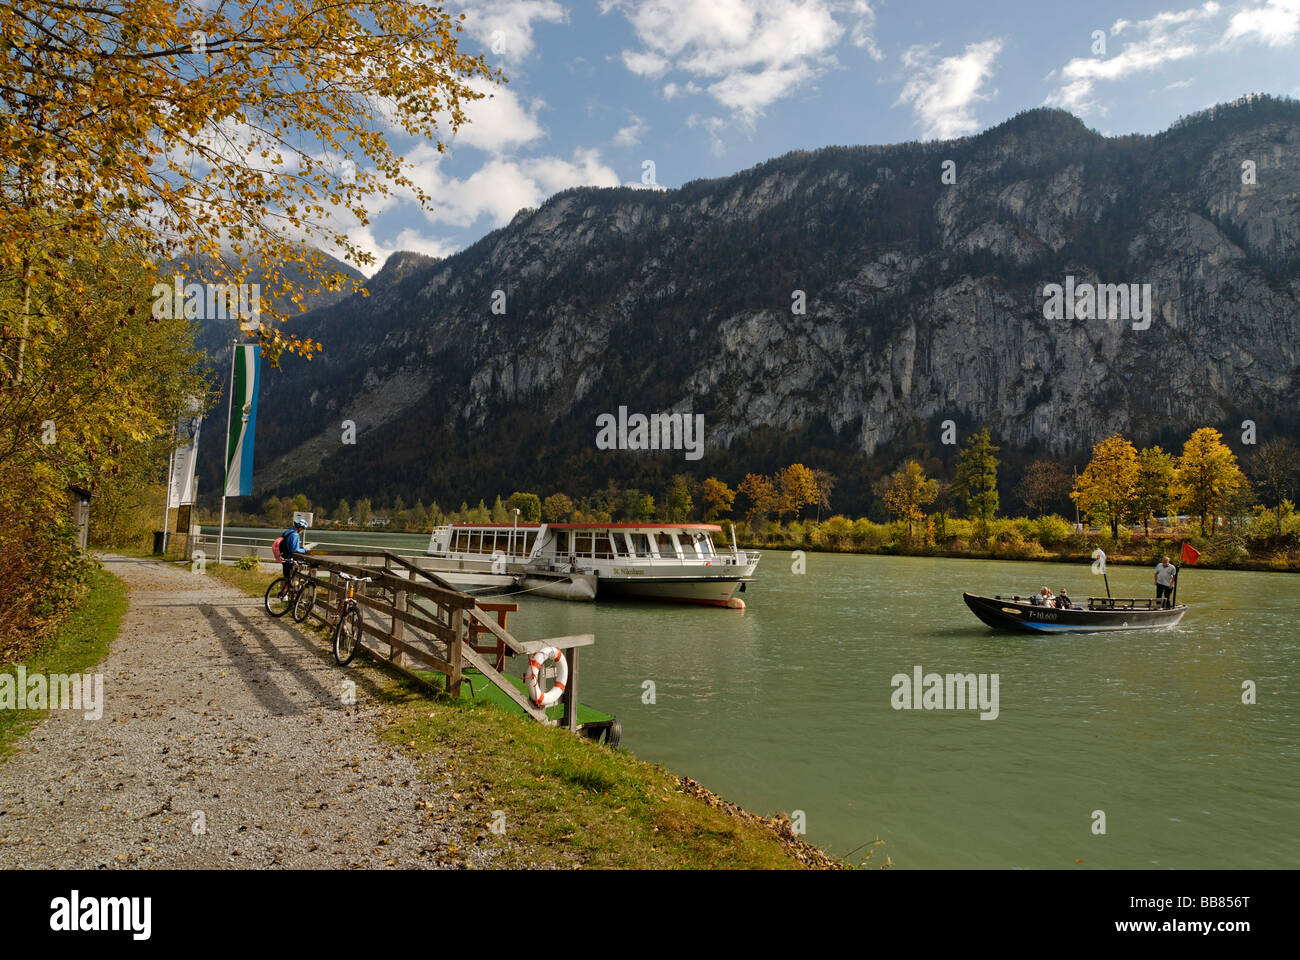 Boat and ferryboat on the Inn River near Kiefersfelden in the Inntal Valley, Upper Bavaria, Germany, Europe - Stock Image